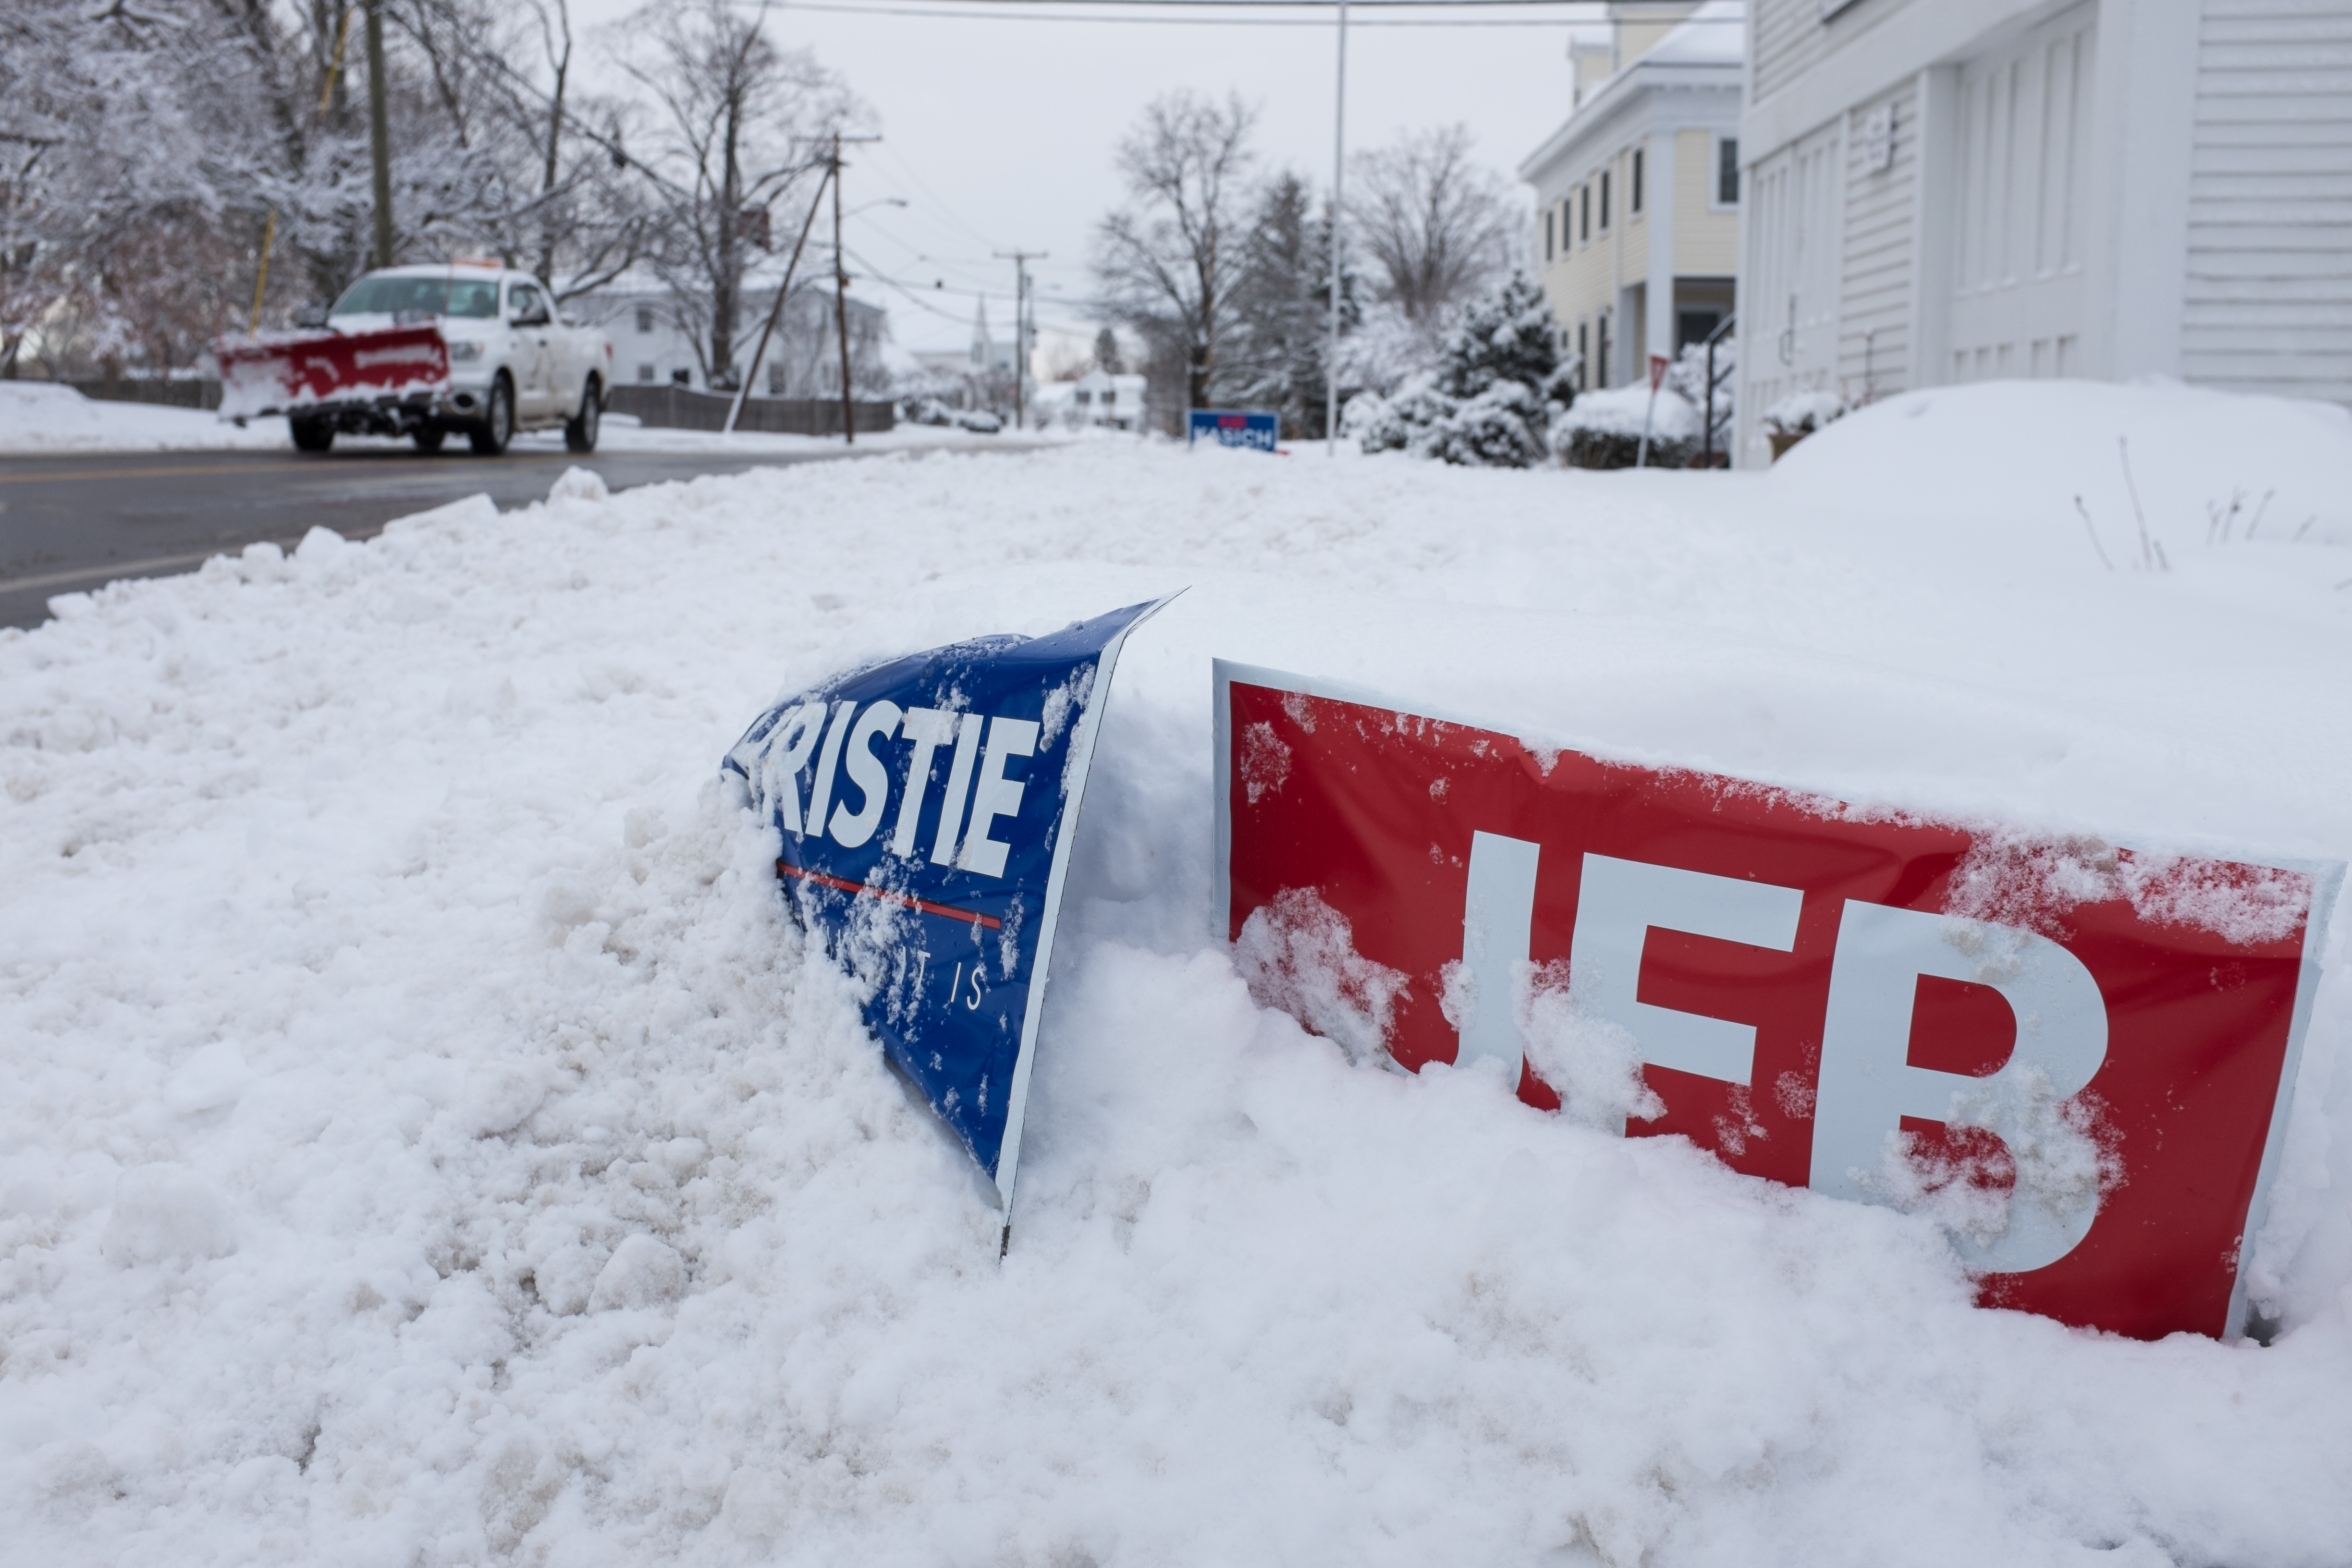 Political signs buried in snow are seen on Feb. 5, 2016 in Hollis, New Hampshire.